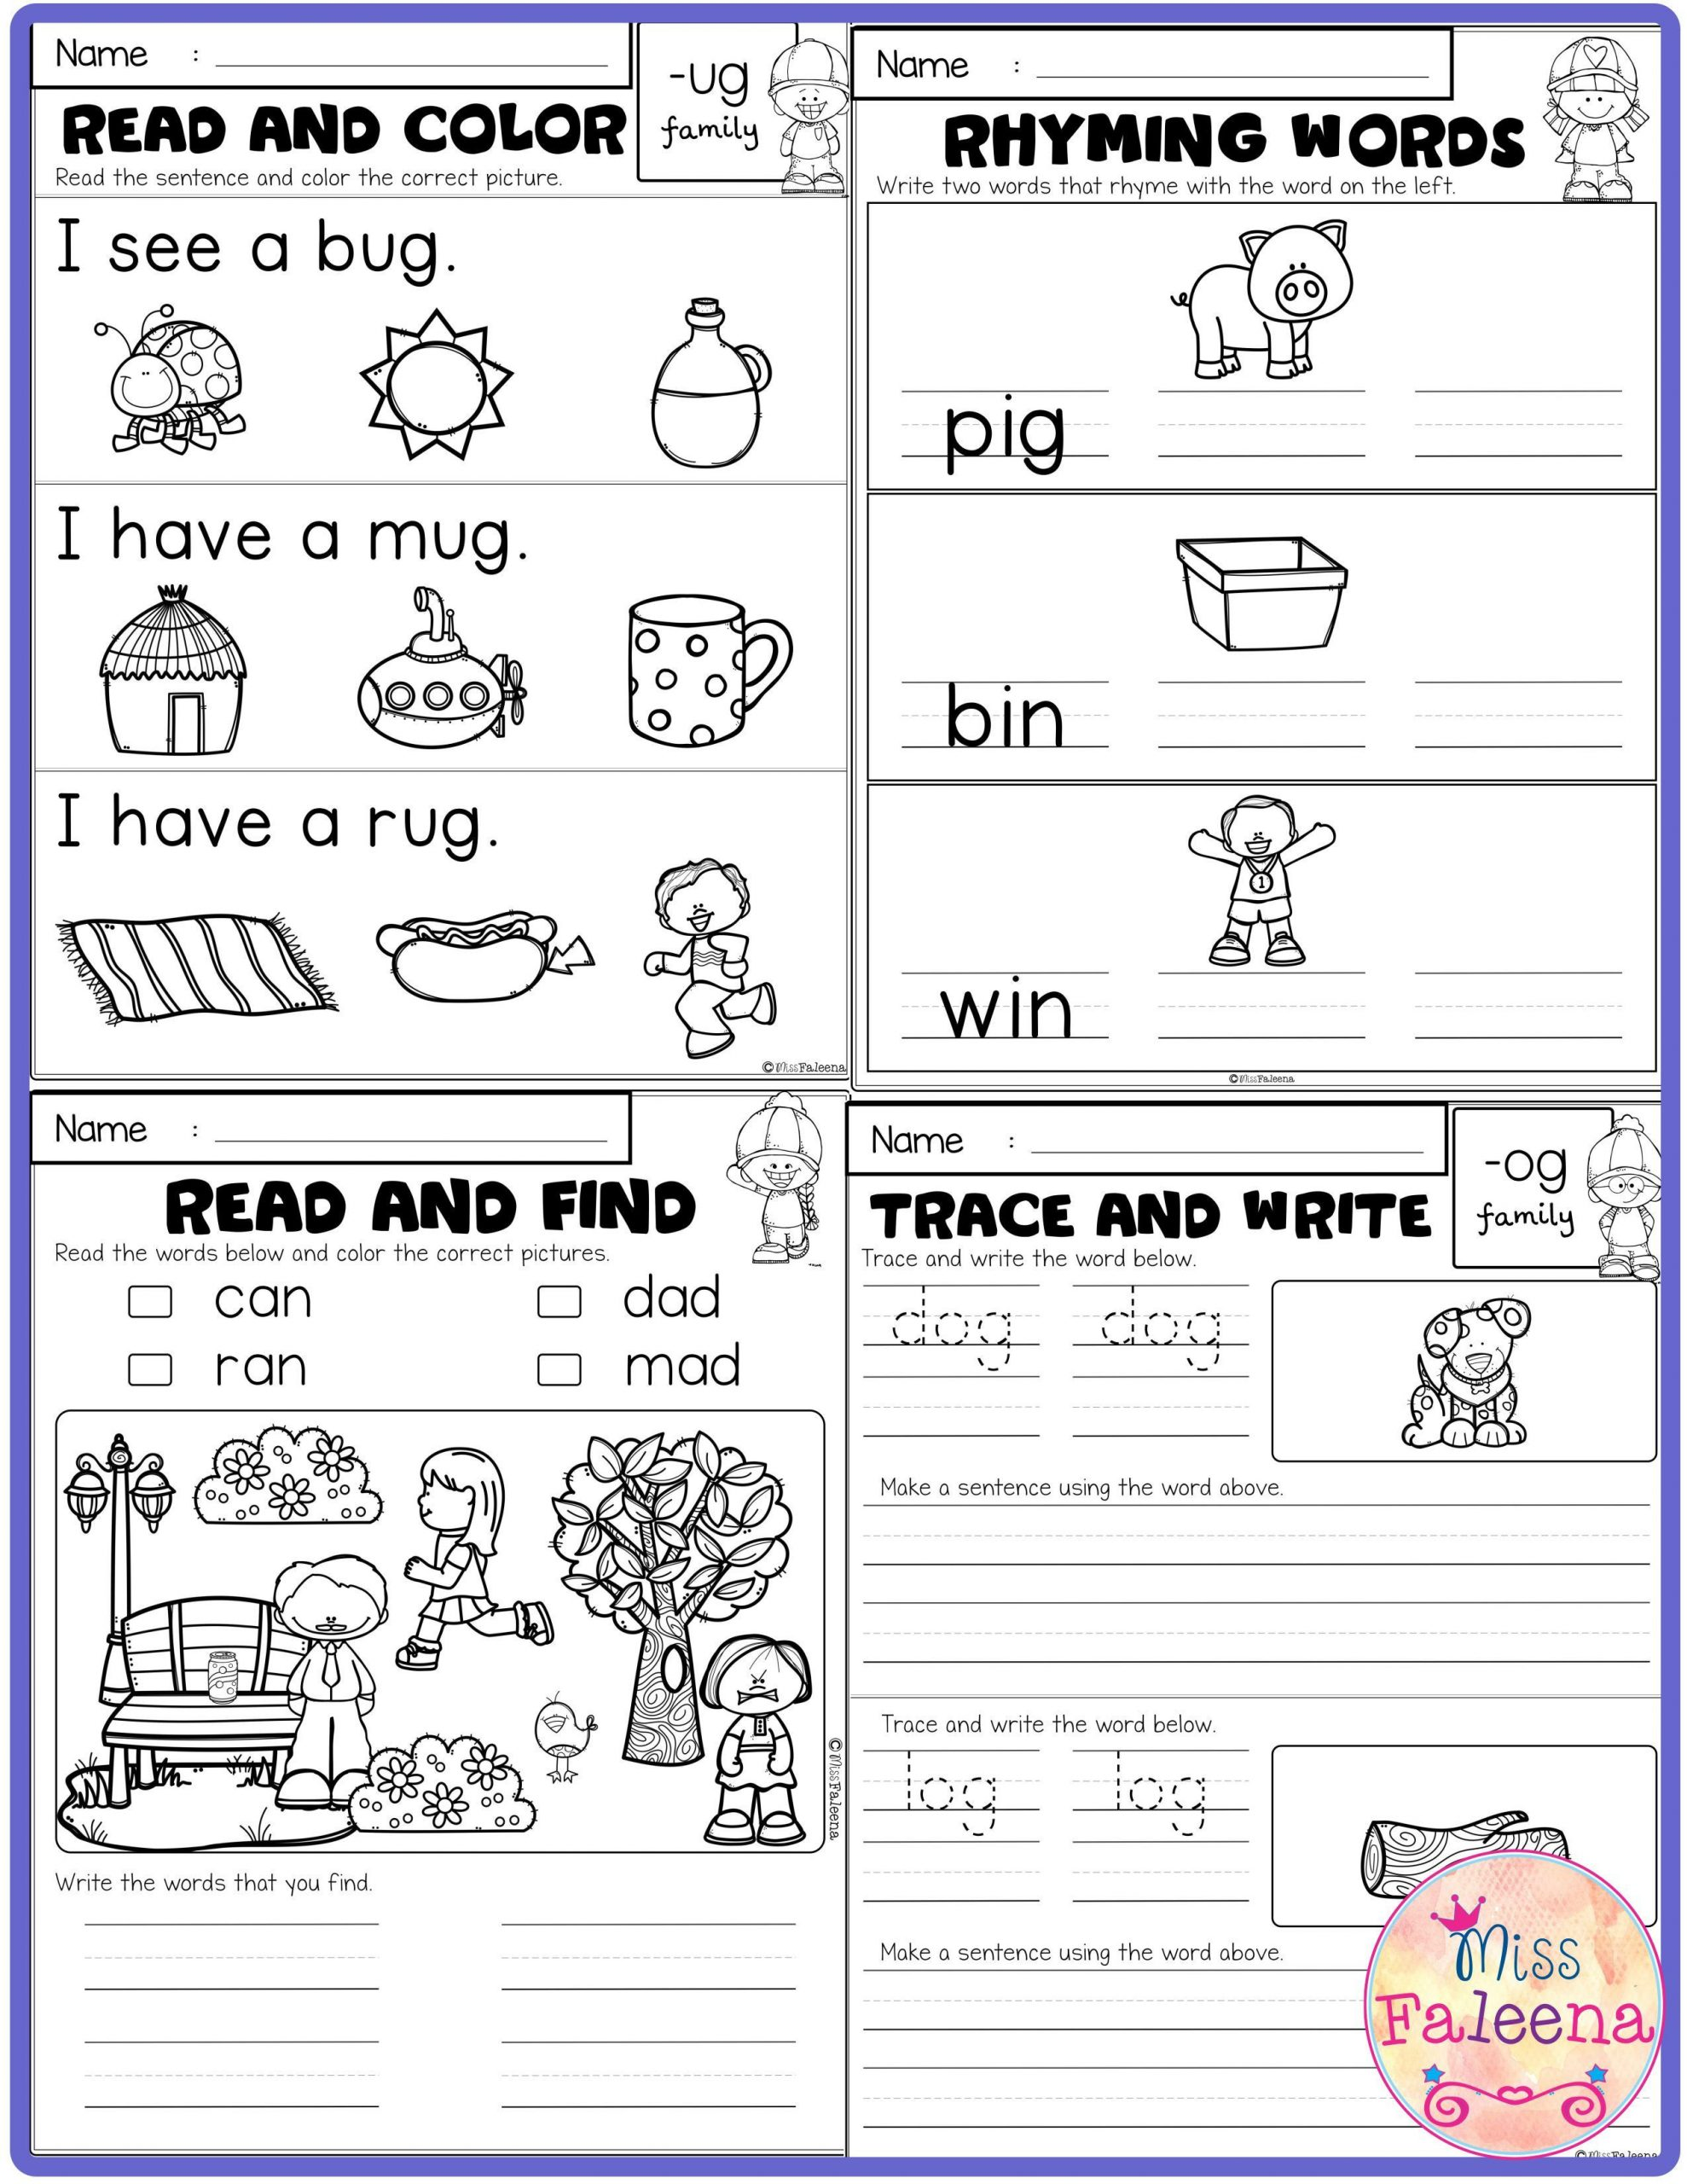 Cvc Worksheets for First Grade Free Cvc Activities Has 5 Pages Of Cvc Worksheets these